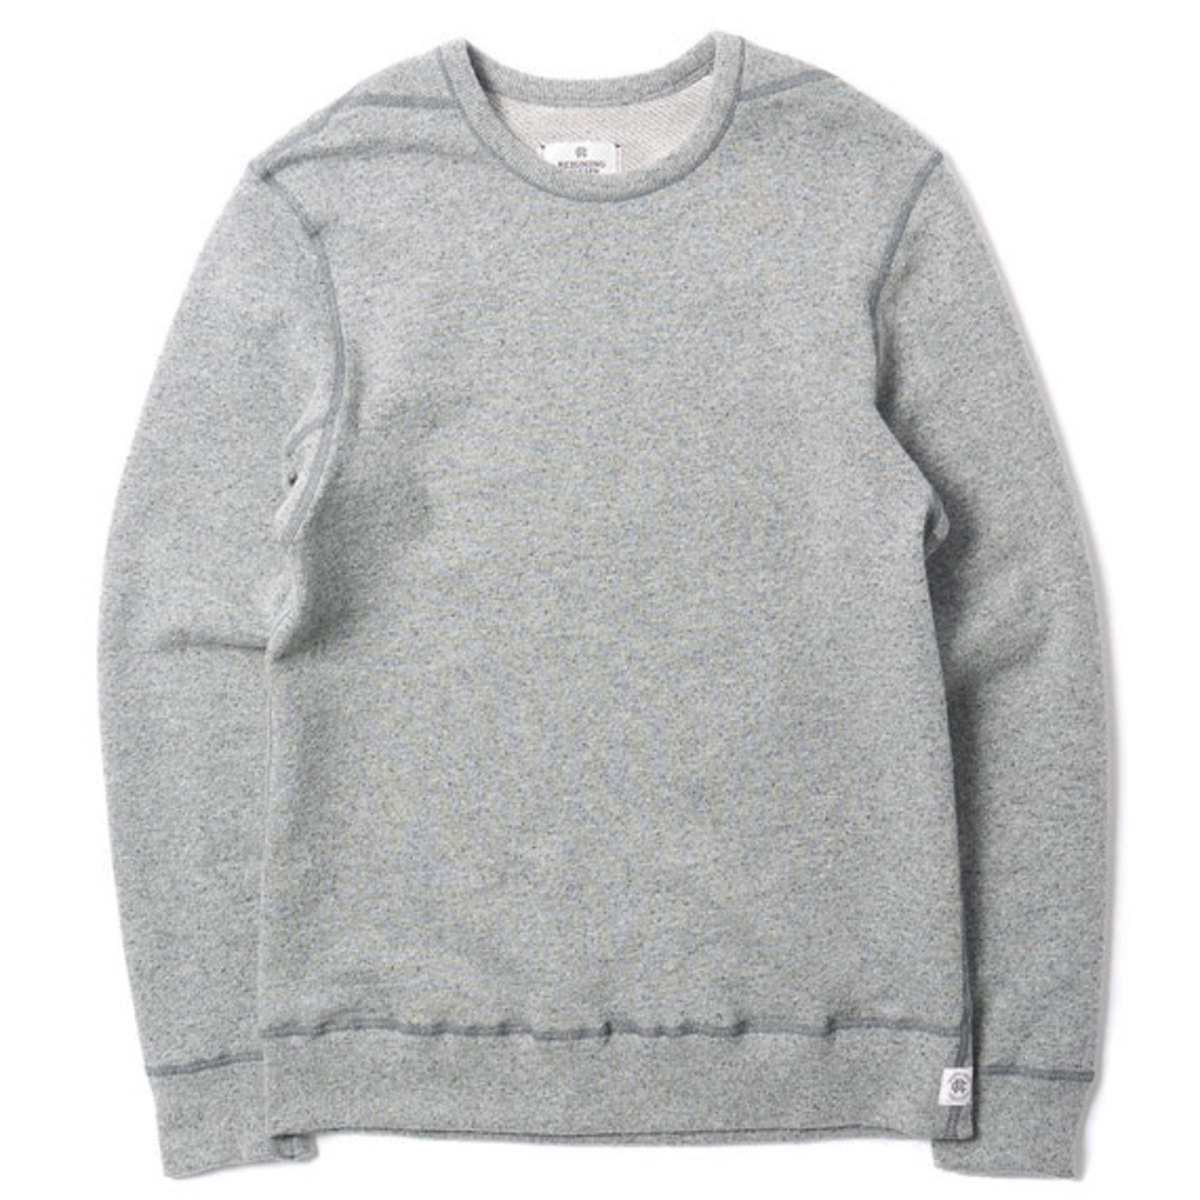 steven-alan-reigning-champ-classic-americana-capsule-collection-04